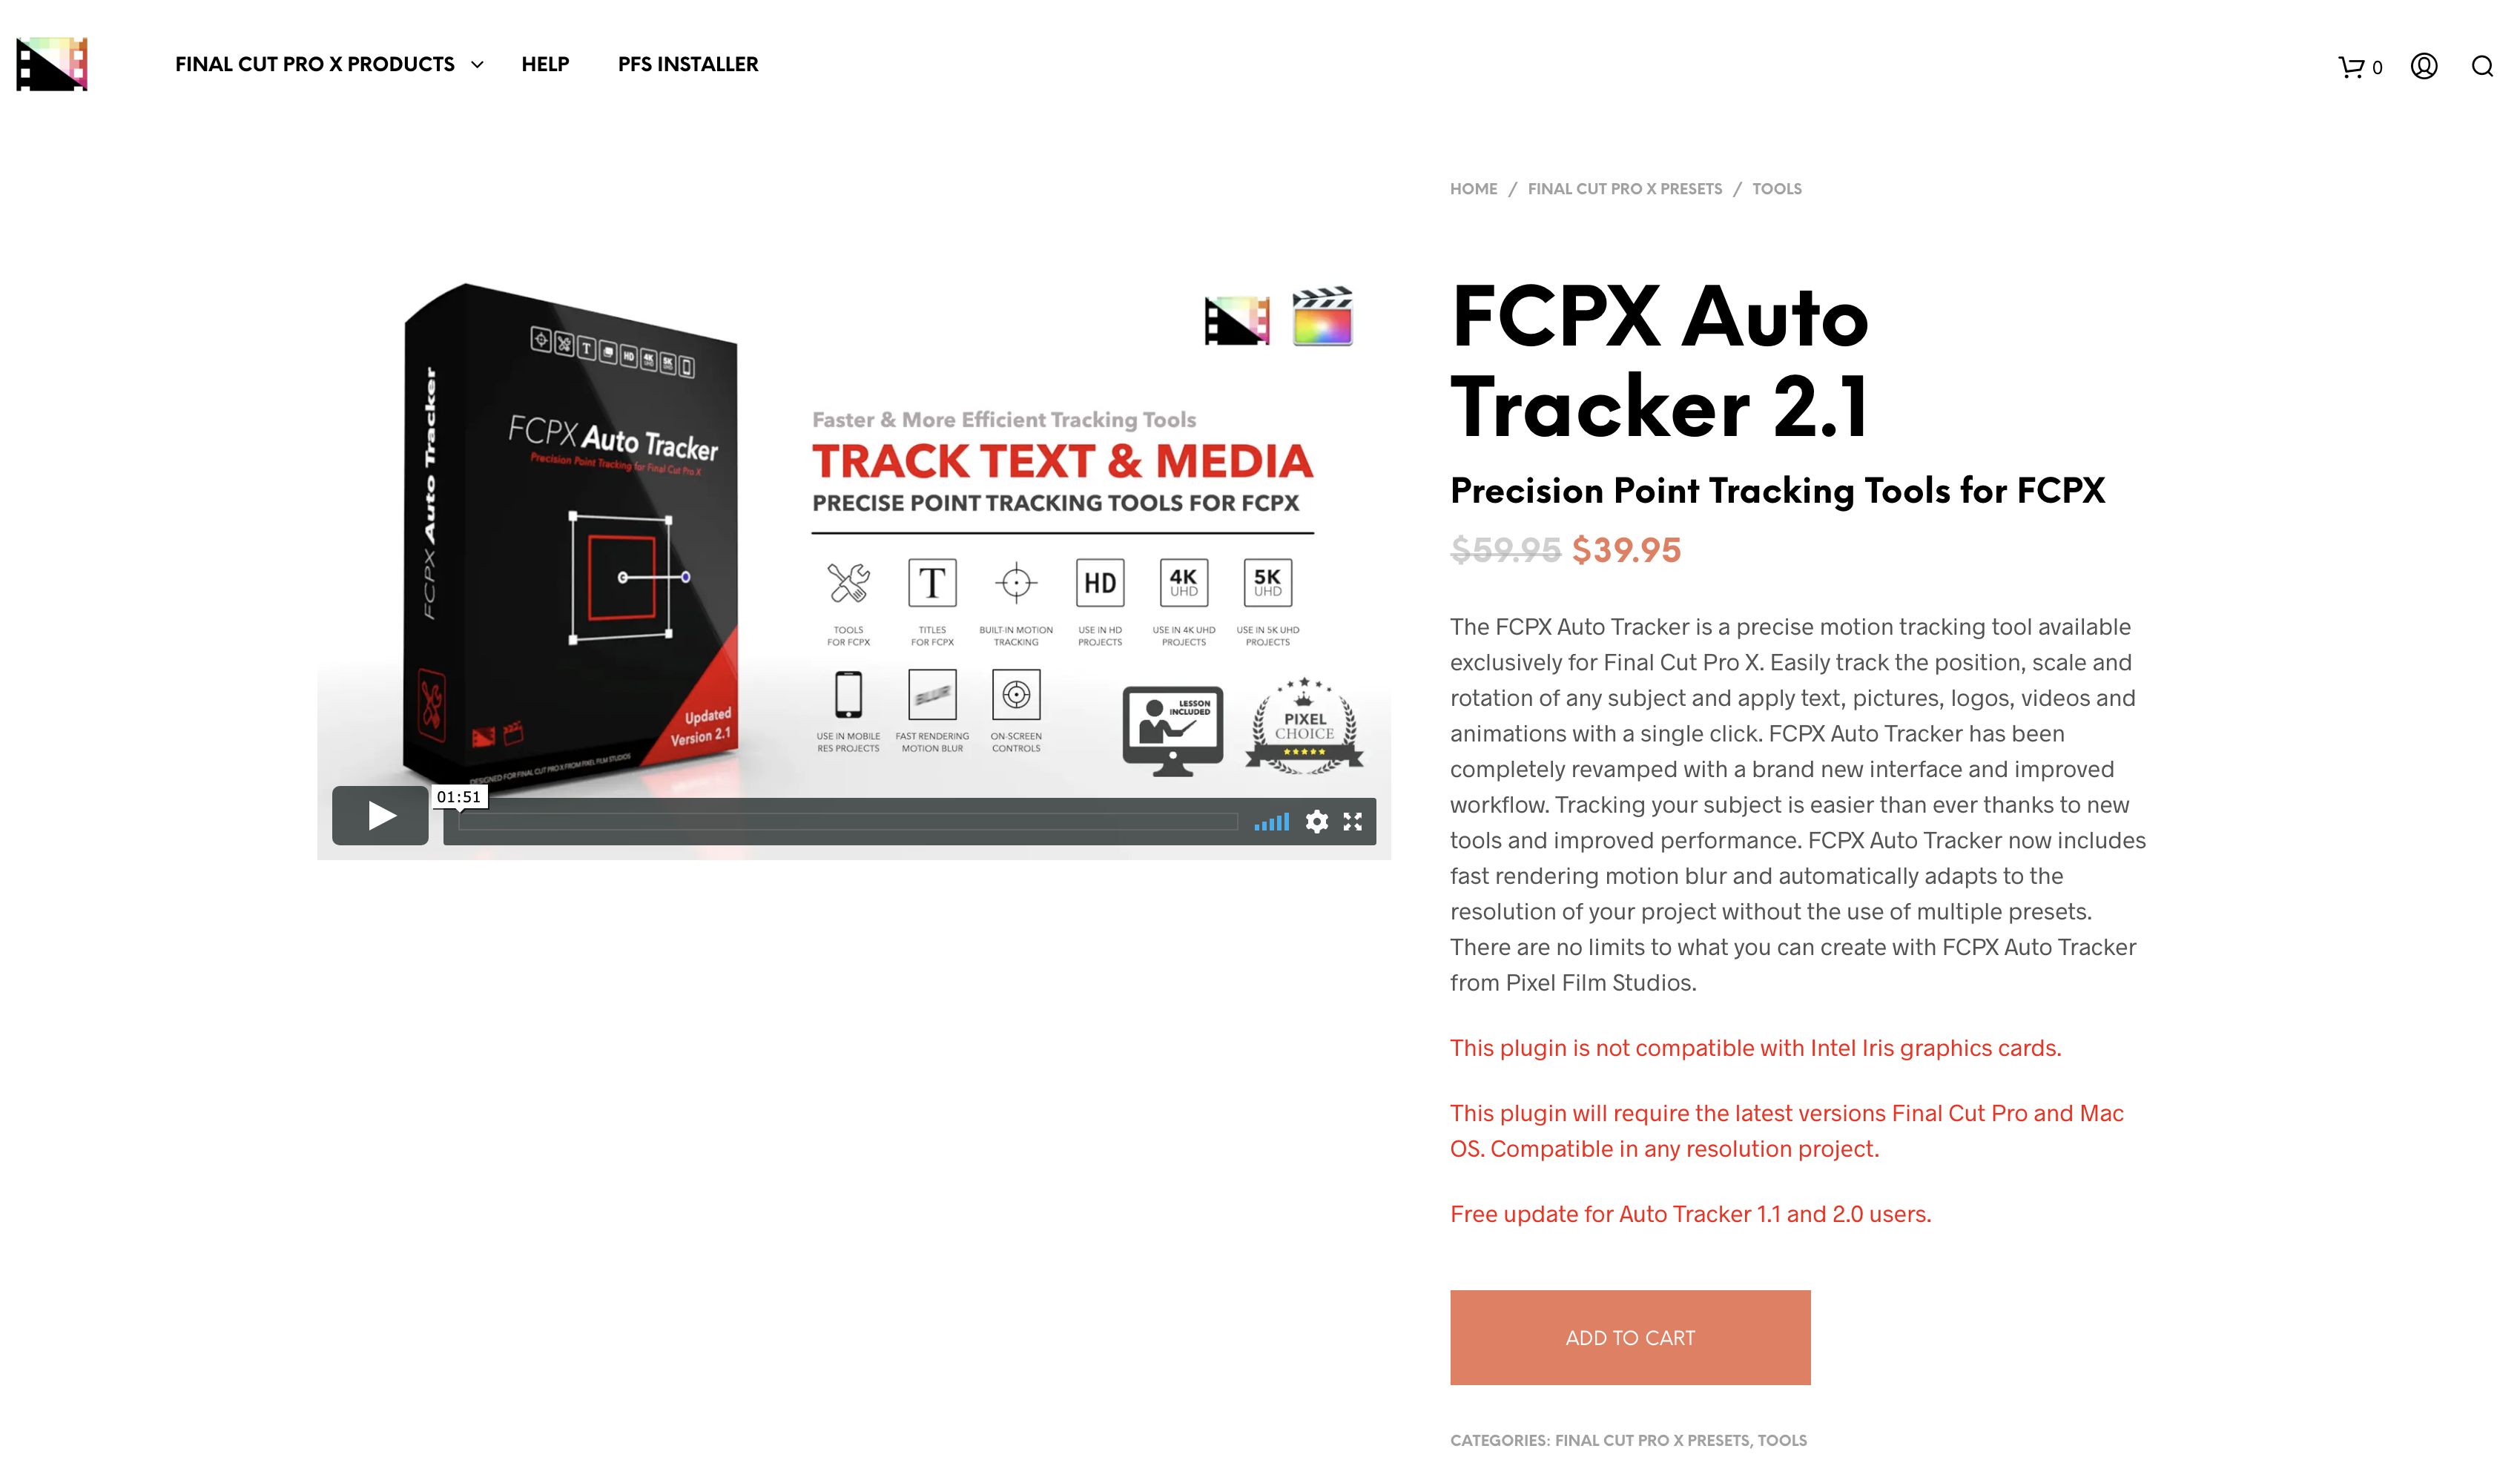 FCPX Auto Tracker 2.1 screenshot